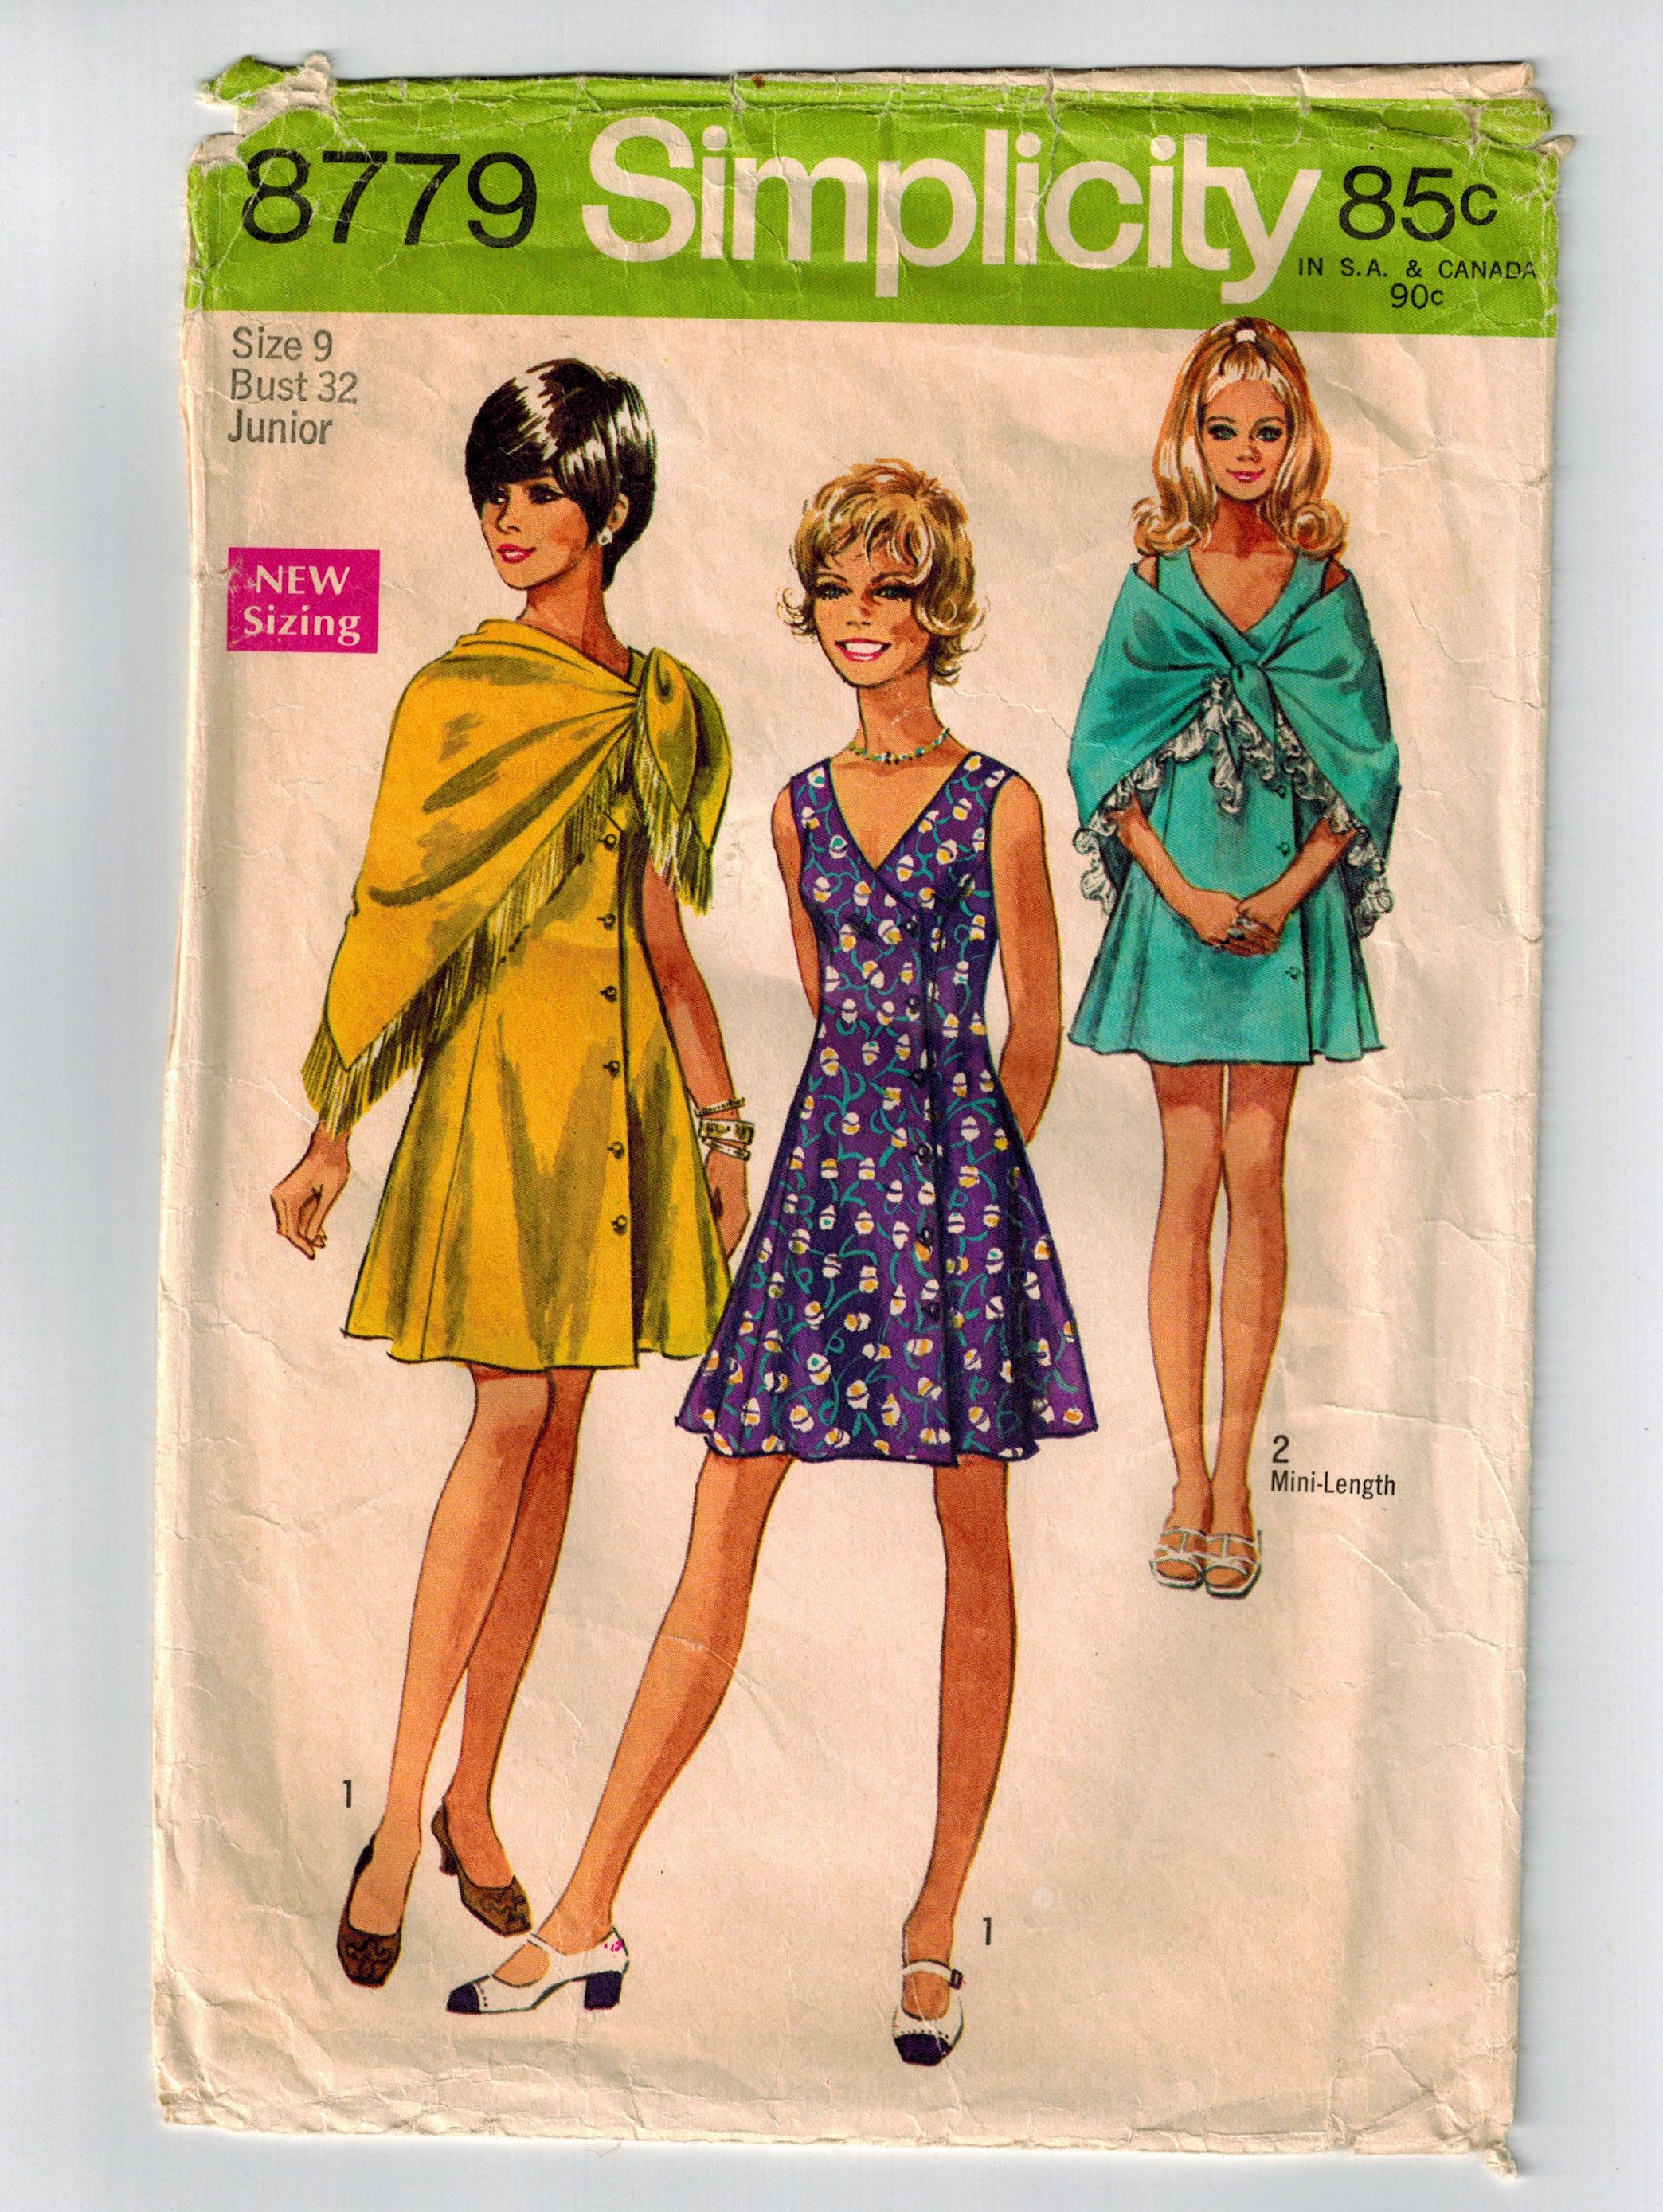 e0891d494 Vintage 70s Dress and Shawl Sewing Pattern Bust 32 Sleeveless Flared A-line  Dress Princess Seams V Neck Fringed Shawl Mini or Knee Length by ...